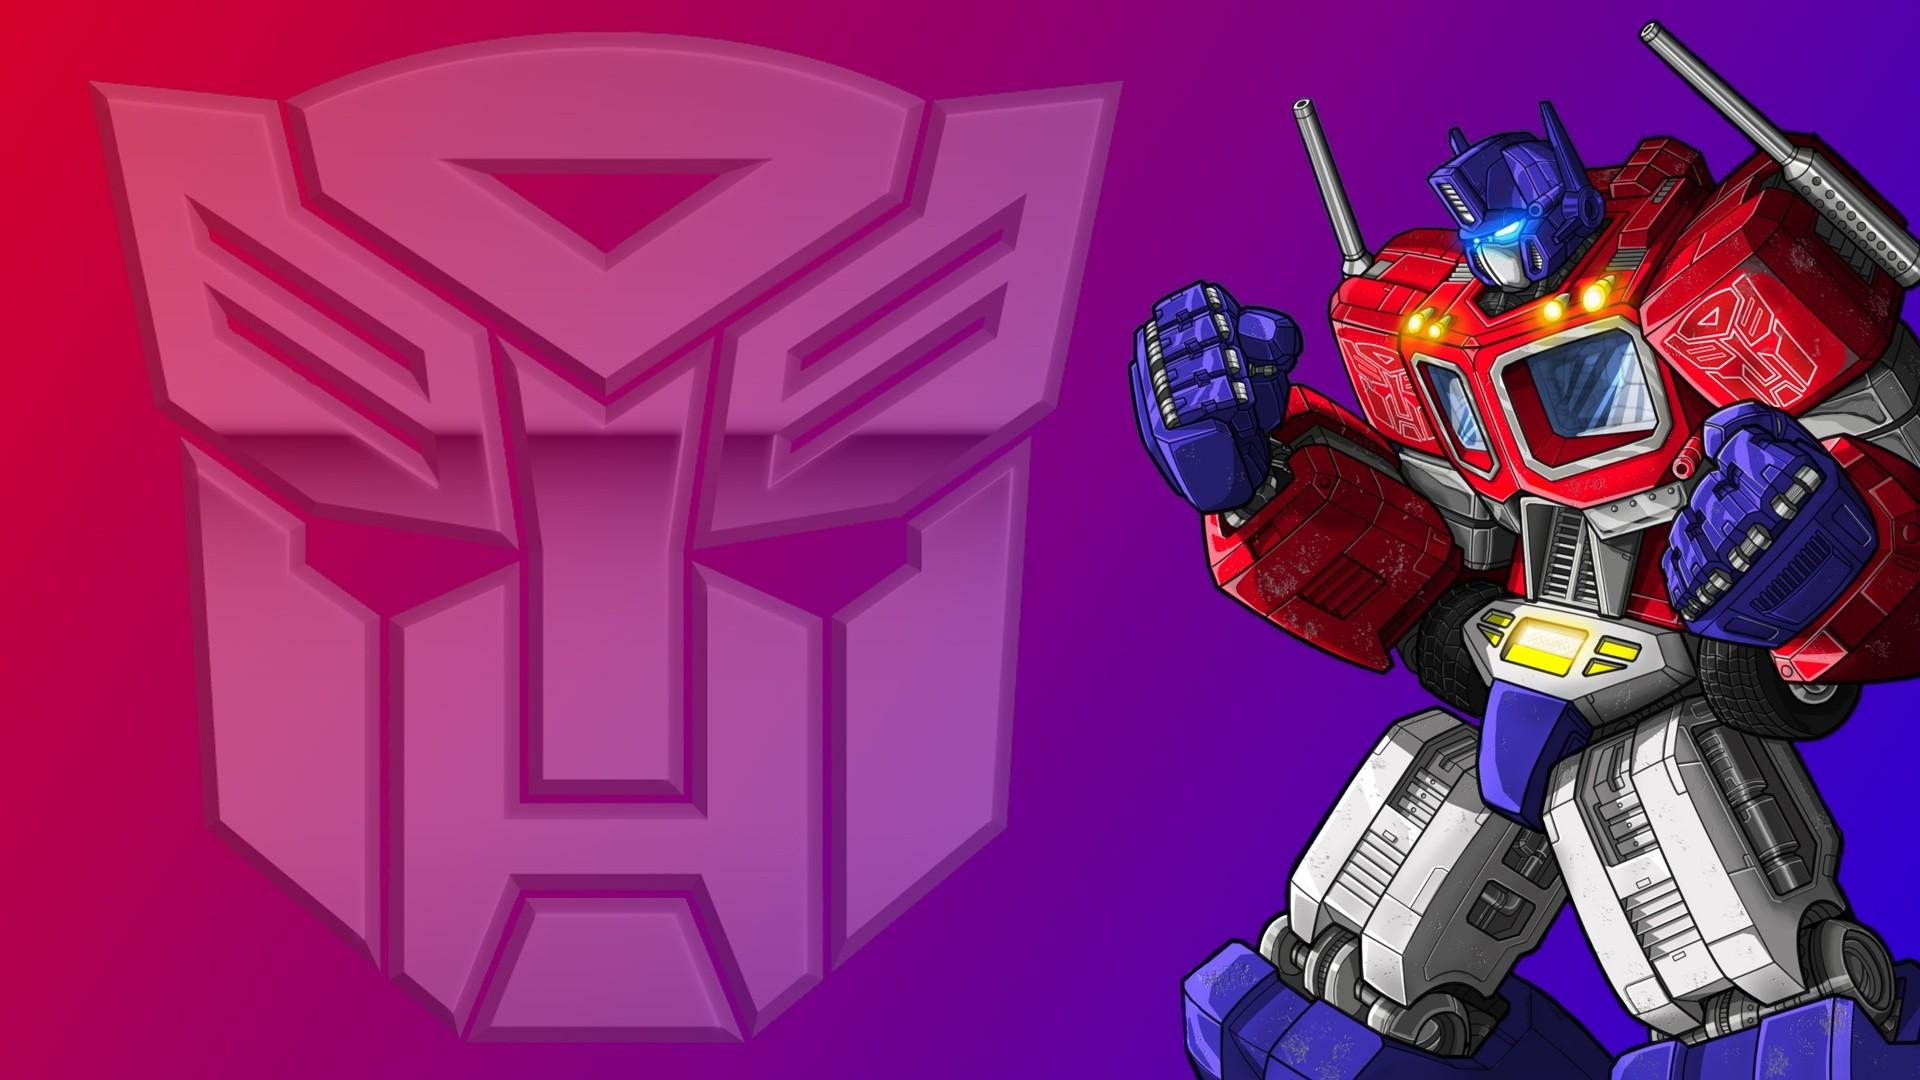 G1 Optimus Prime Wallpaper - WallpaperSafari